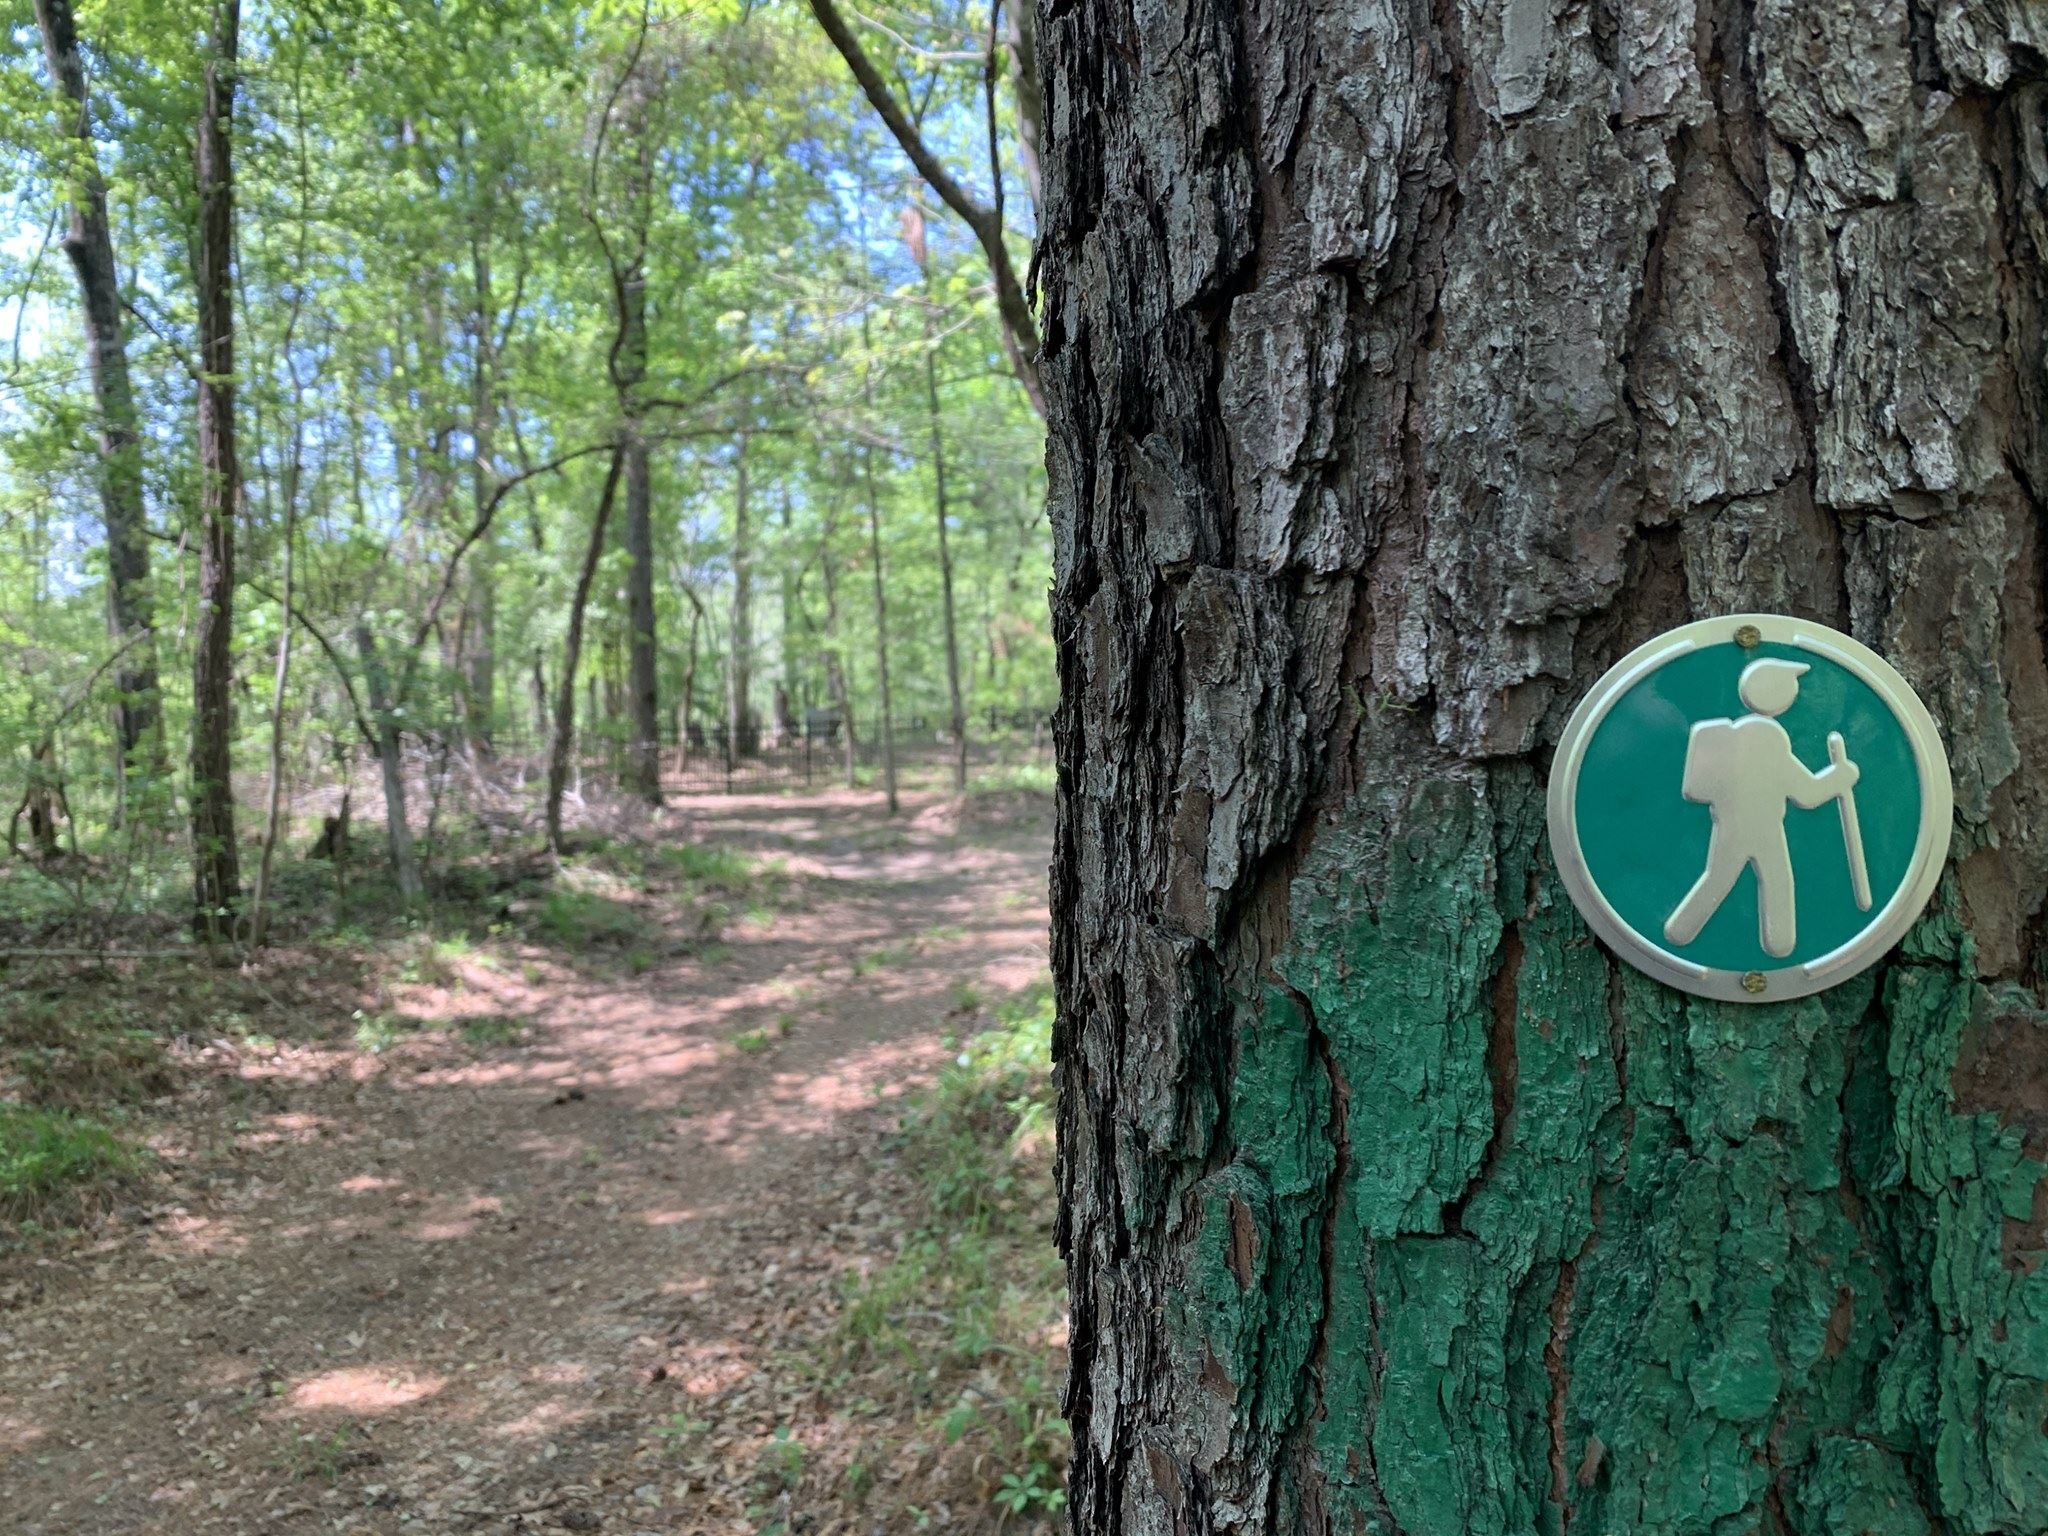 Sign image in green of a hiker posted on a tree, denoting the new green trail route.